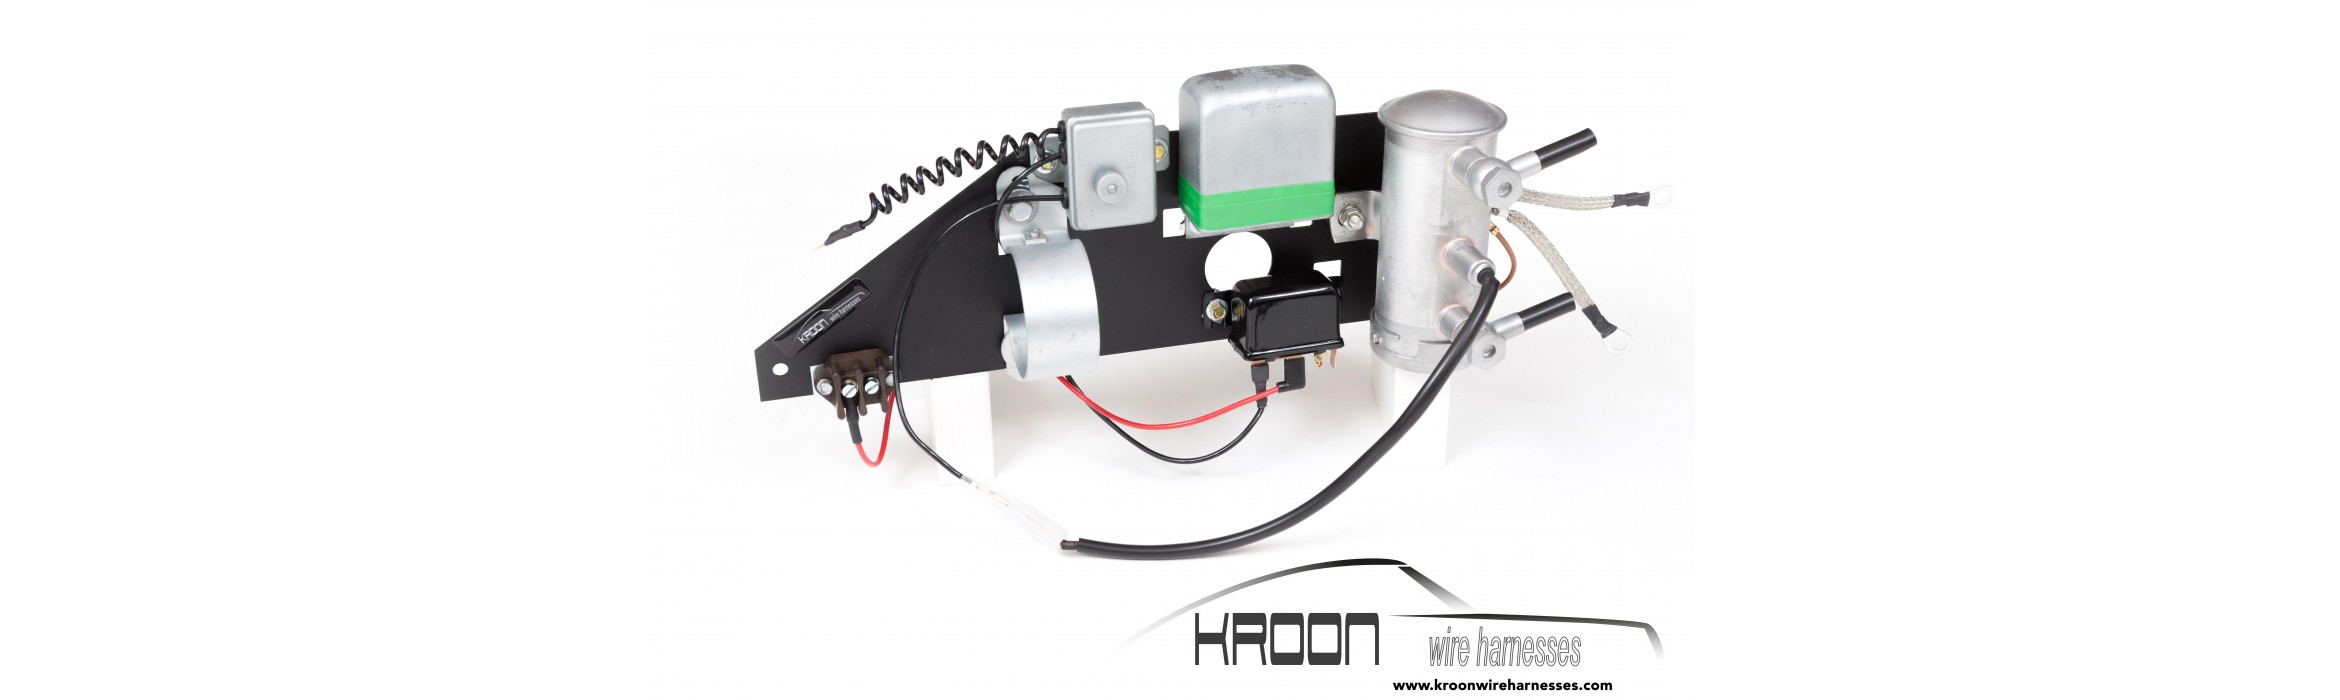 kroon wire harnesses rh kroonwireharnesses com Engine Wiring Harness Ynz Wiring Harness